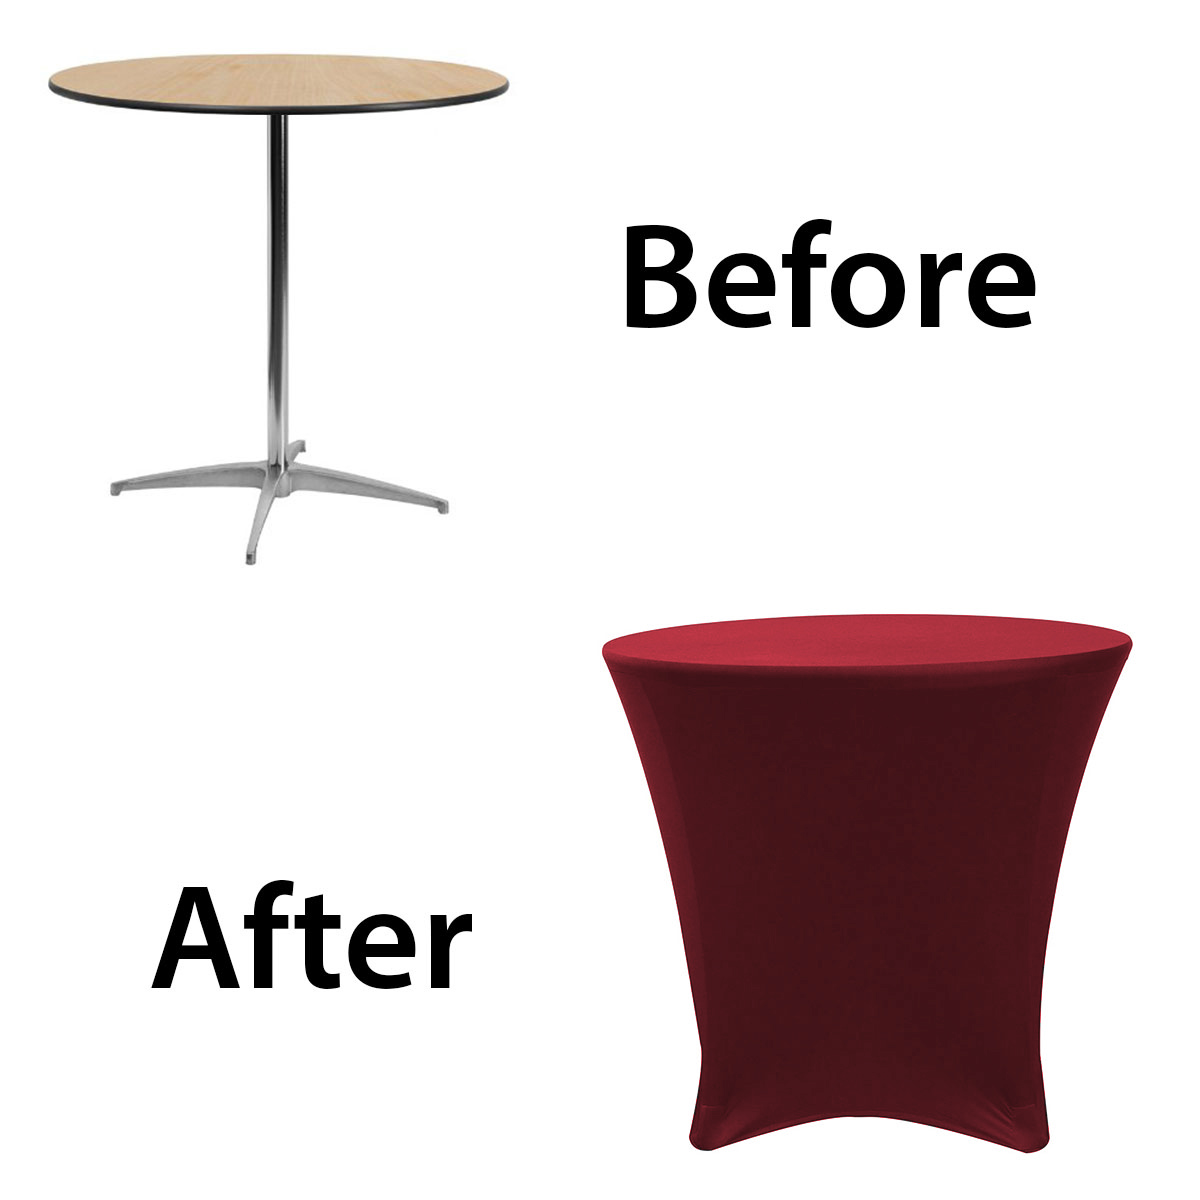 30-30-inch-lowboy-cocktail-spandex-table-covers-burgundy-before-after.jpg